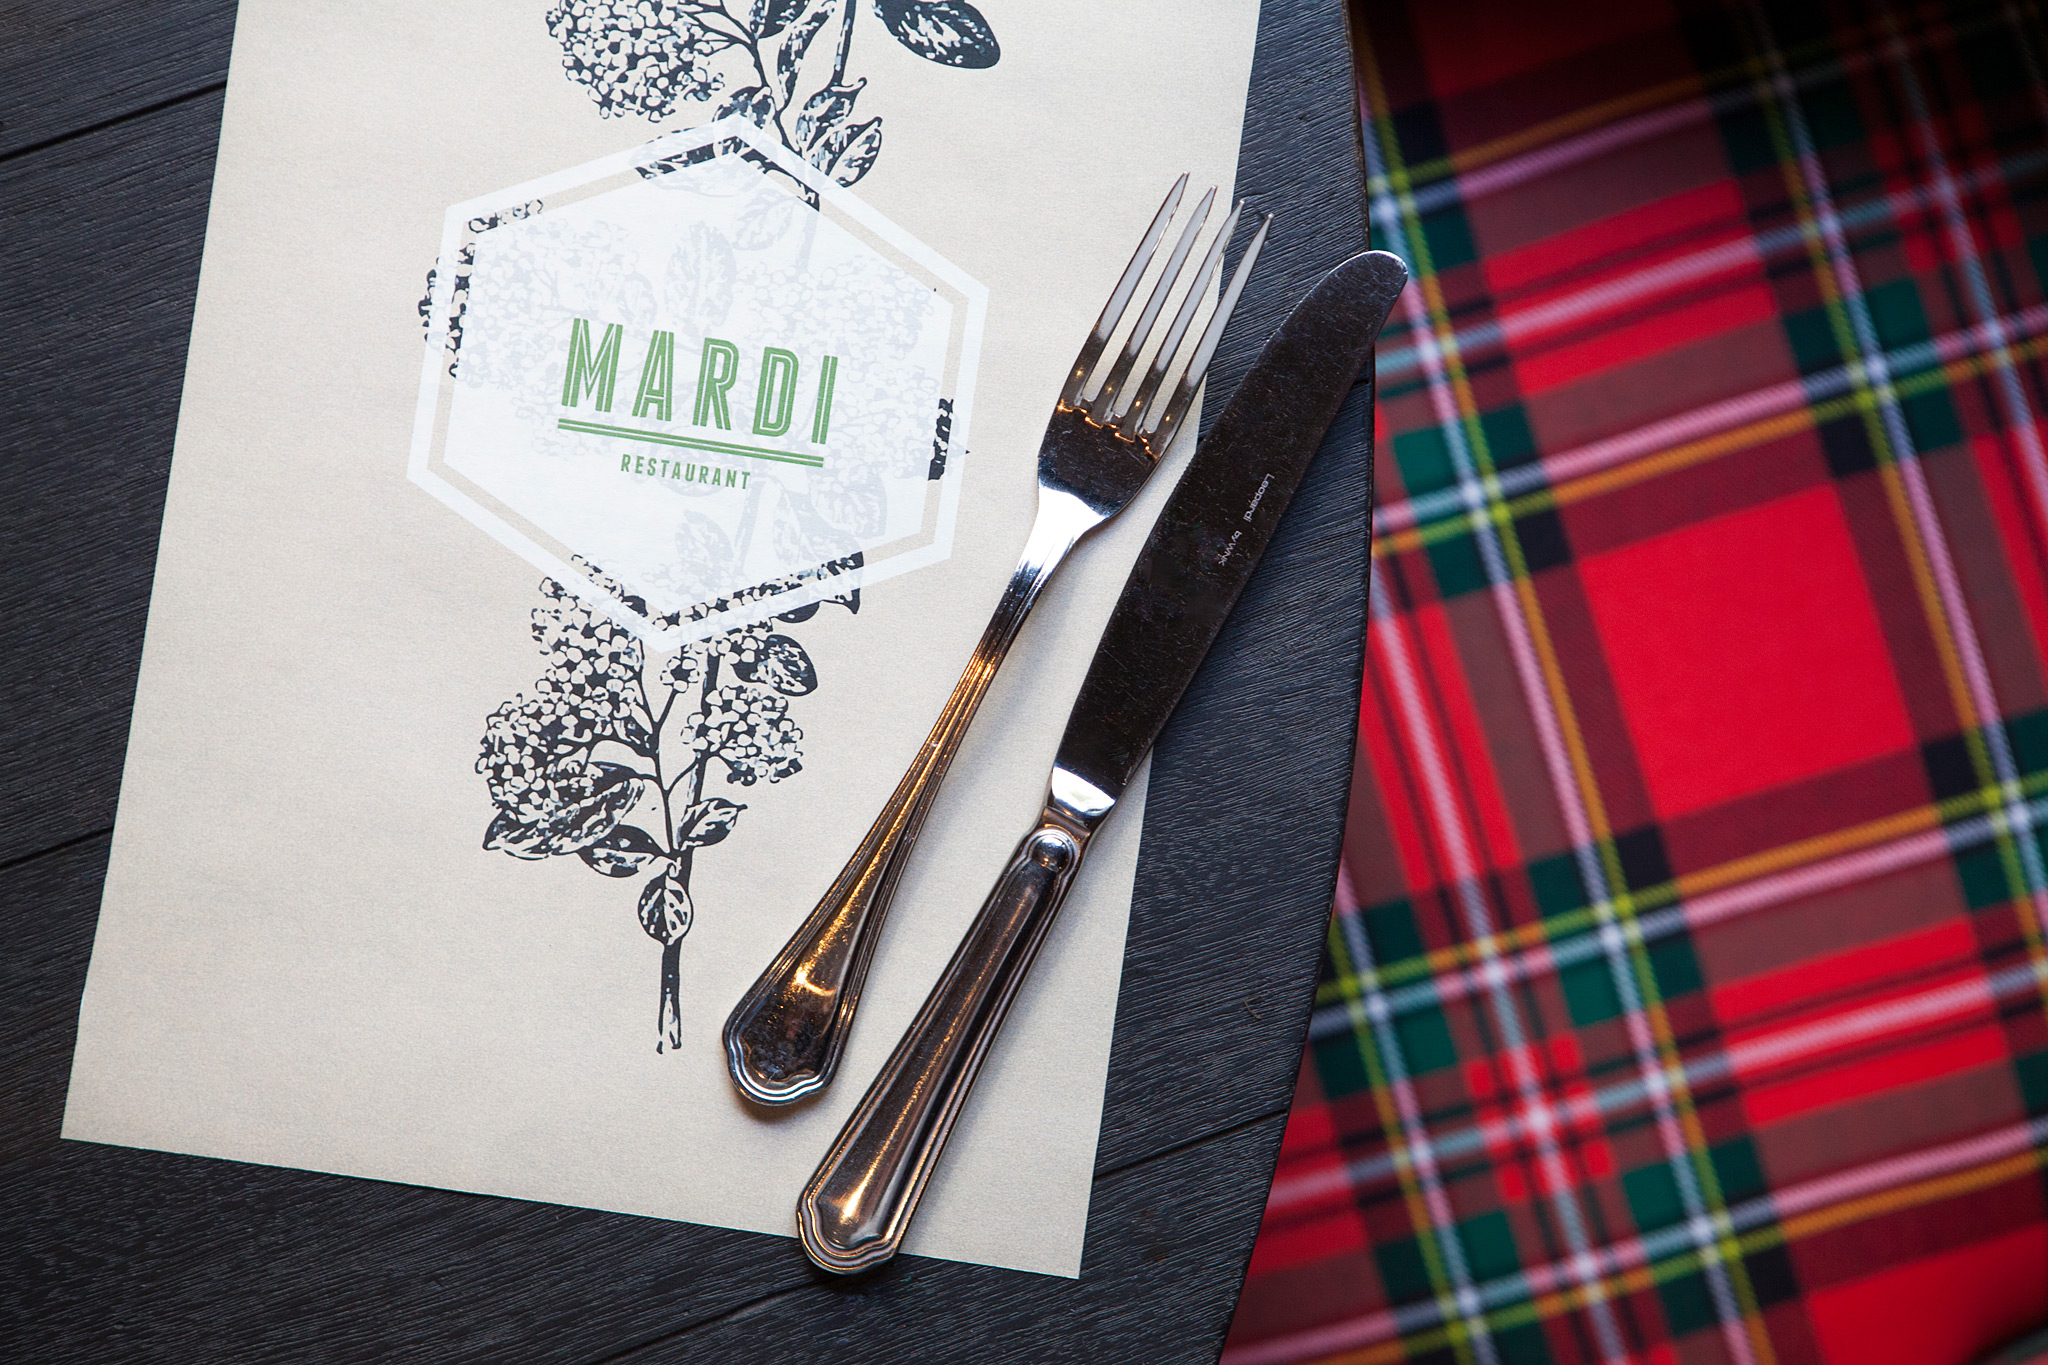 Birds-eye shot of Mardi menu with logo and flower illustration. Fork and knife on corner of menu and corner of table. Red plaid seat also shown.